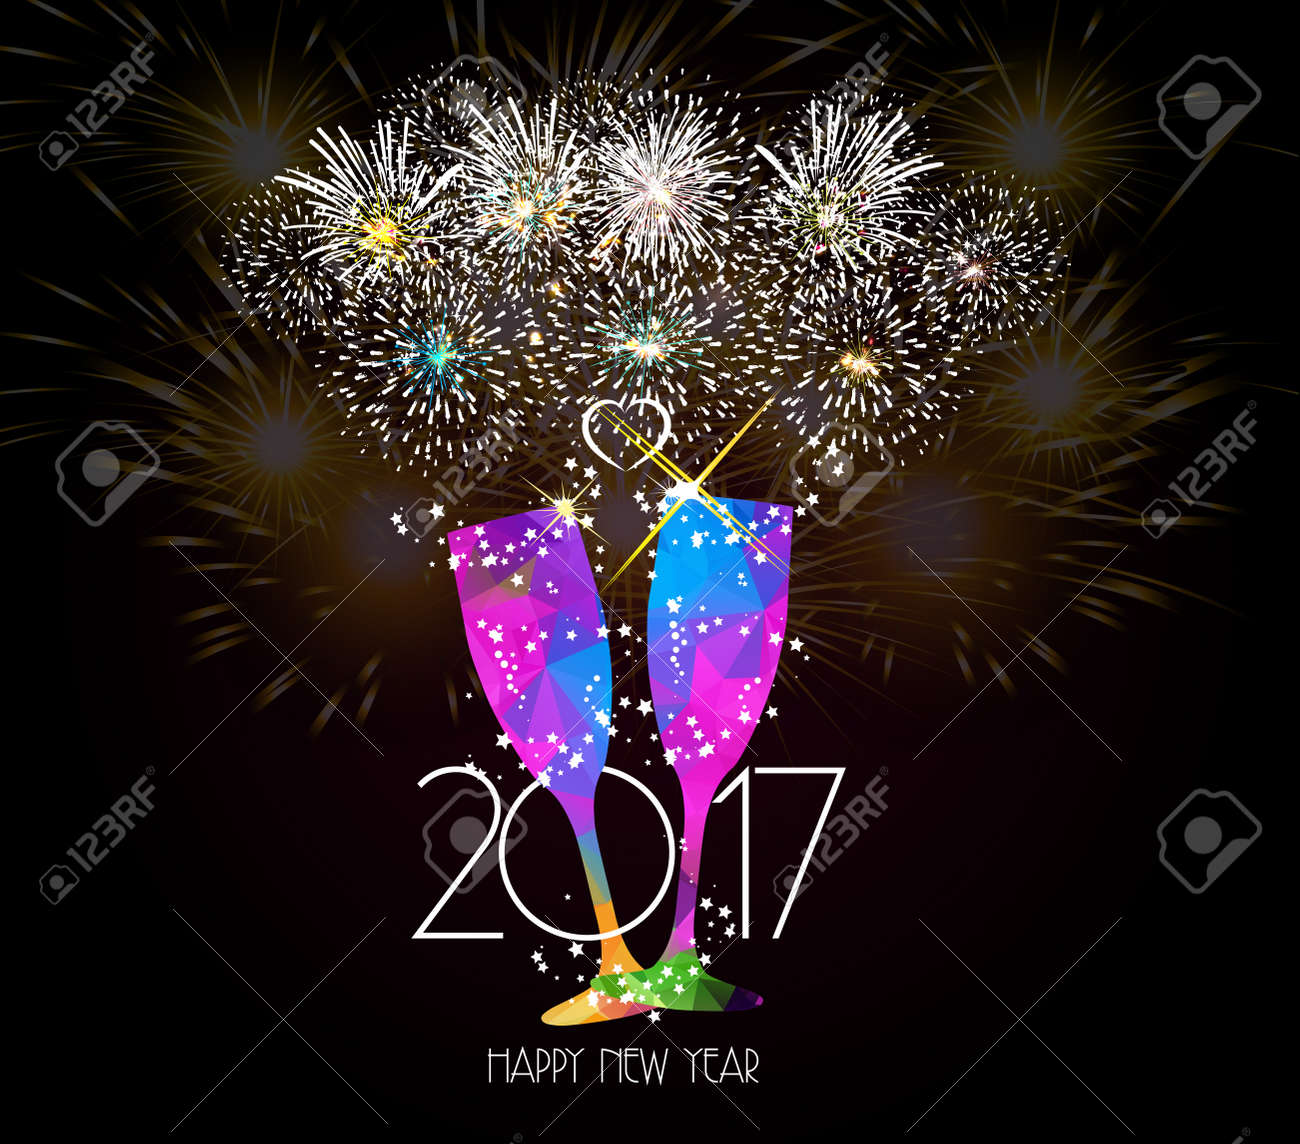 Toasts for New Year 2017 9